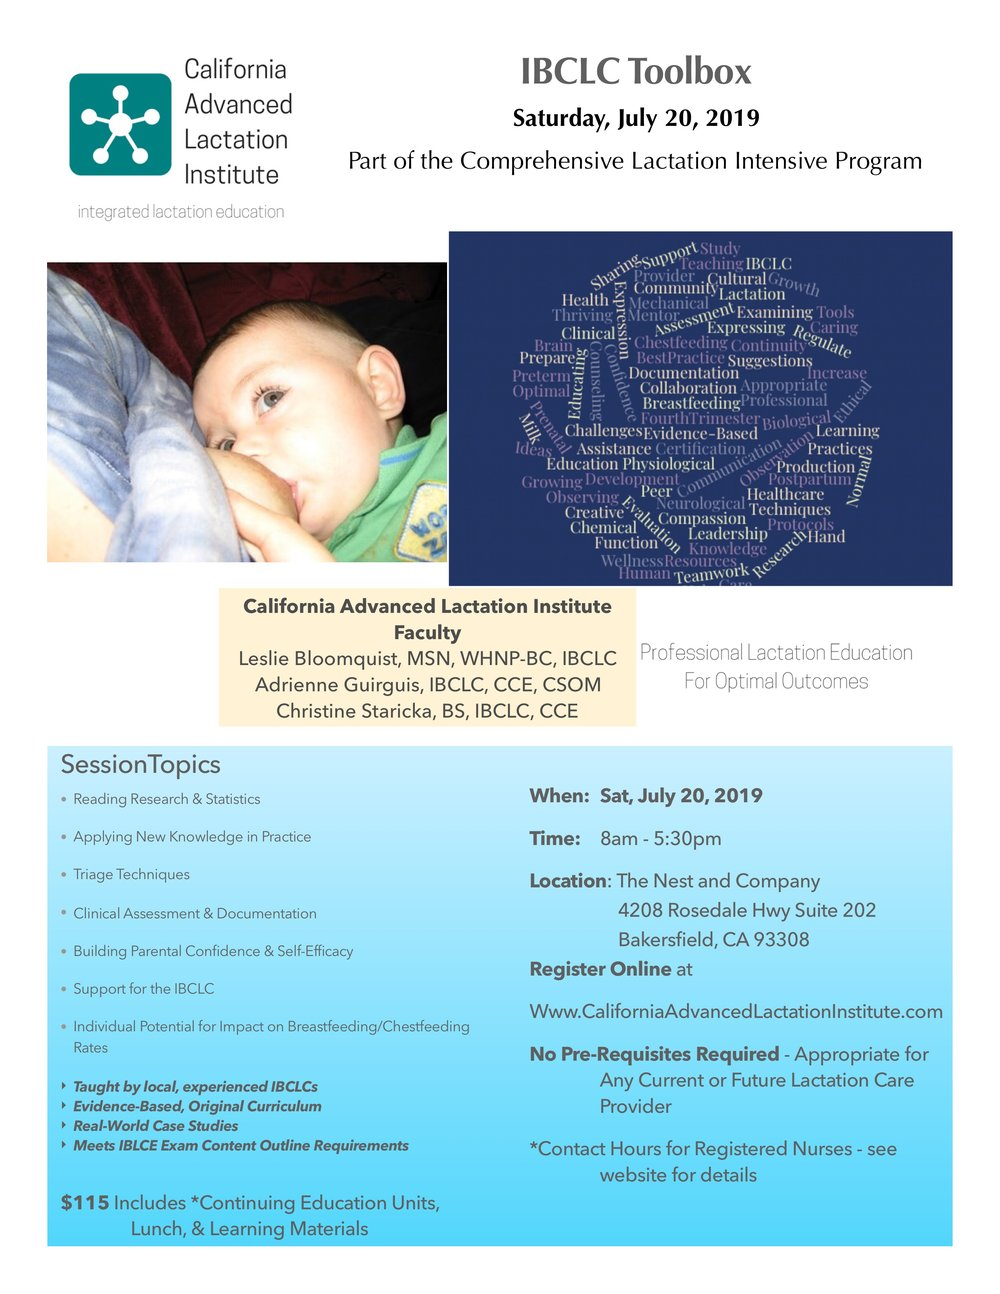 REGISTER HERE  https://form.jotform.com/90998357735173   California Advanced Lactation Institute is a Continuing Education Provider approved by the California Board of Registered Nursing, Provider Number 17133. This event is approved for 10 contact hours. Licensee must maintain certificate for a period of Four years.   Refunds/Cancellation Policy as of April 1, 2019   Written cancellations received two weeks prior to the event will be granted subject to a $10 fee. No refunds will be granted after this date.